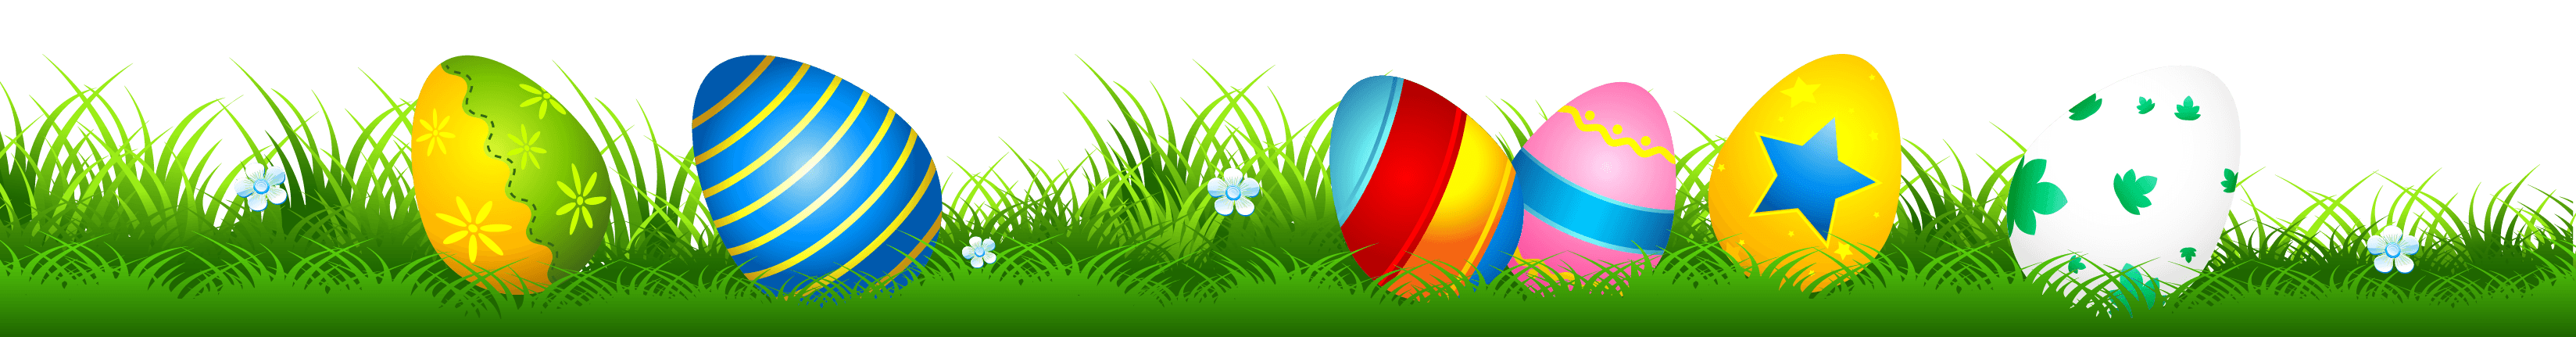 Easter Grass Cliparts.